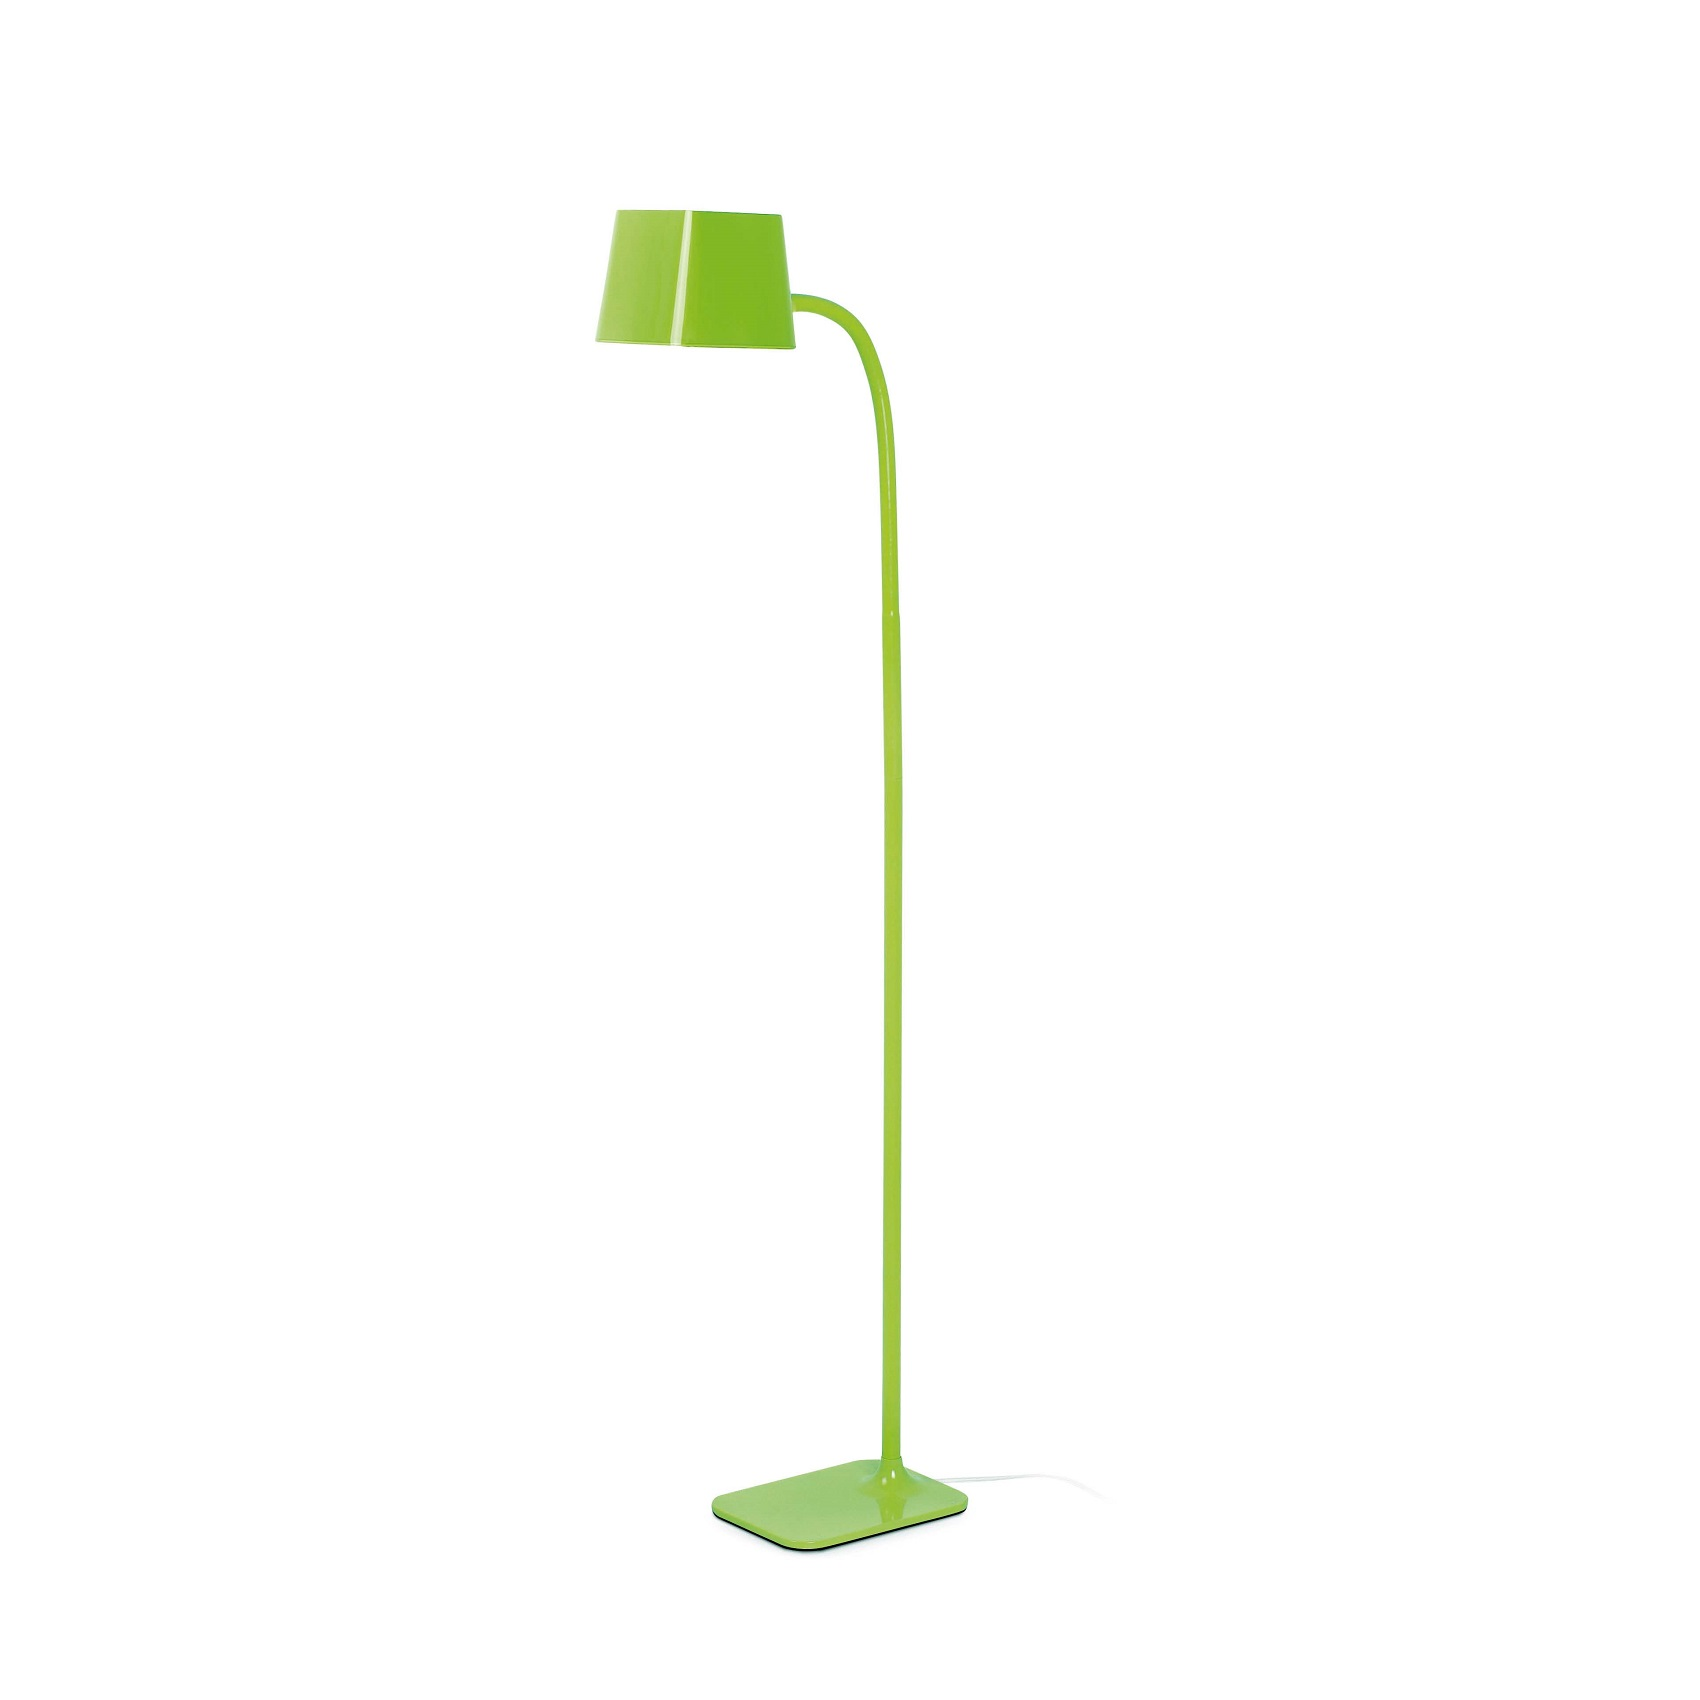 Lampadaire design int rieur flexi faro vert for Lampadaire interieur design